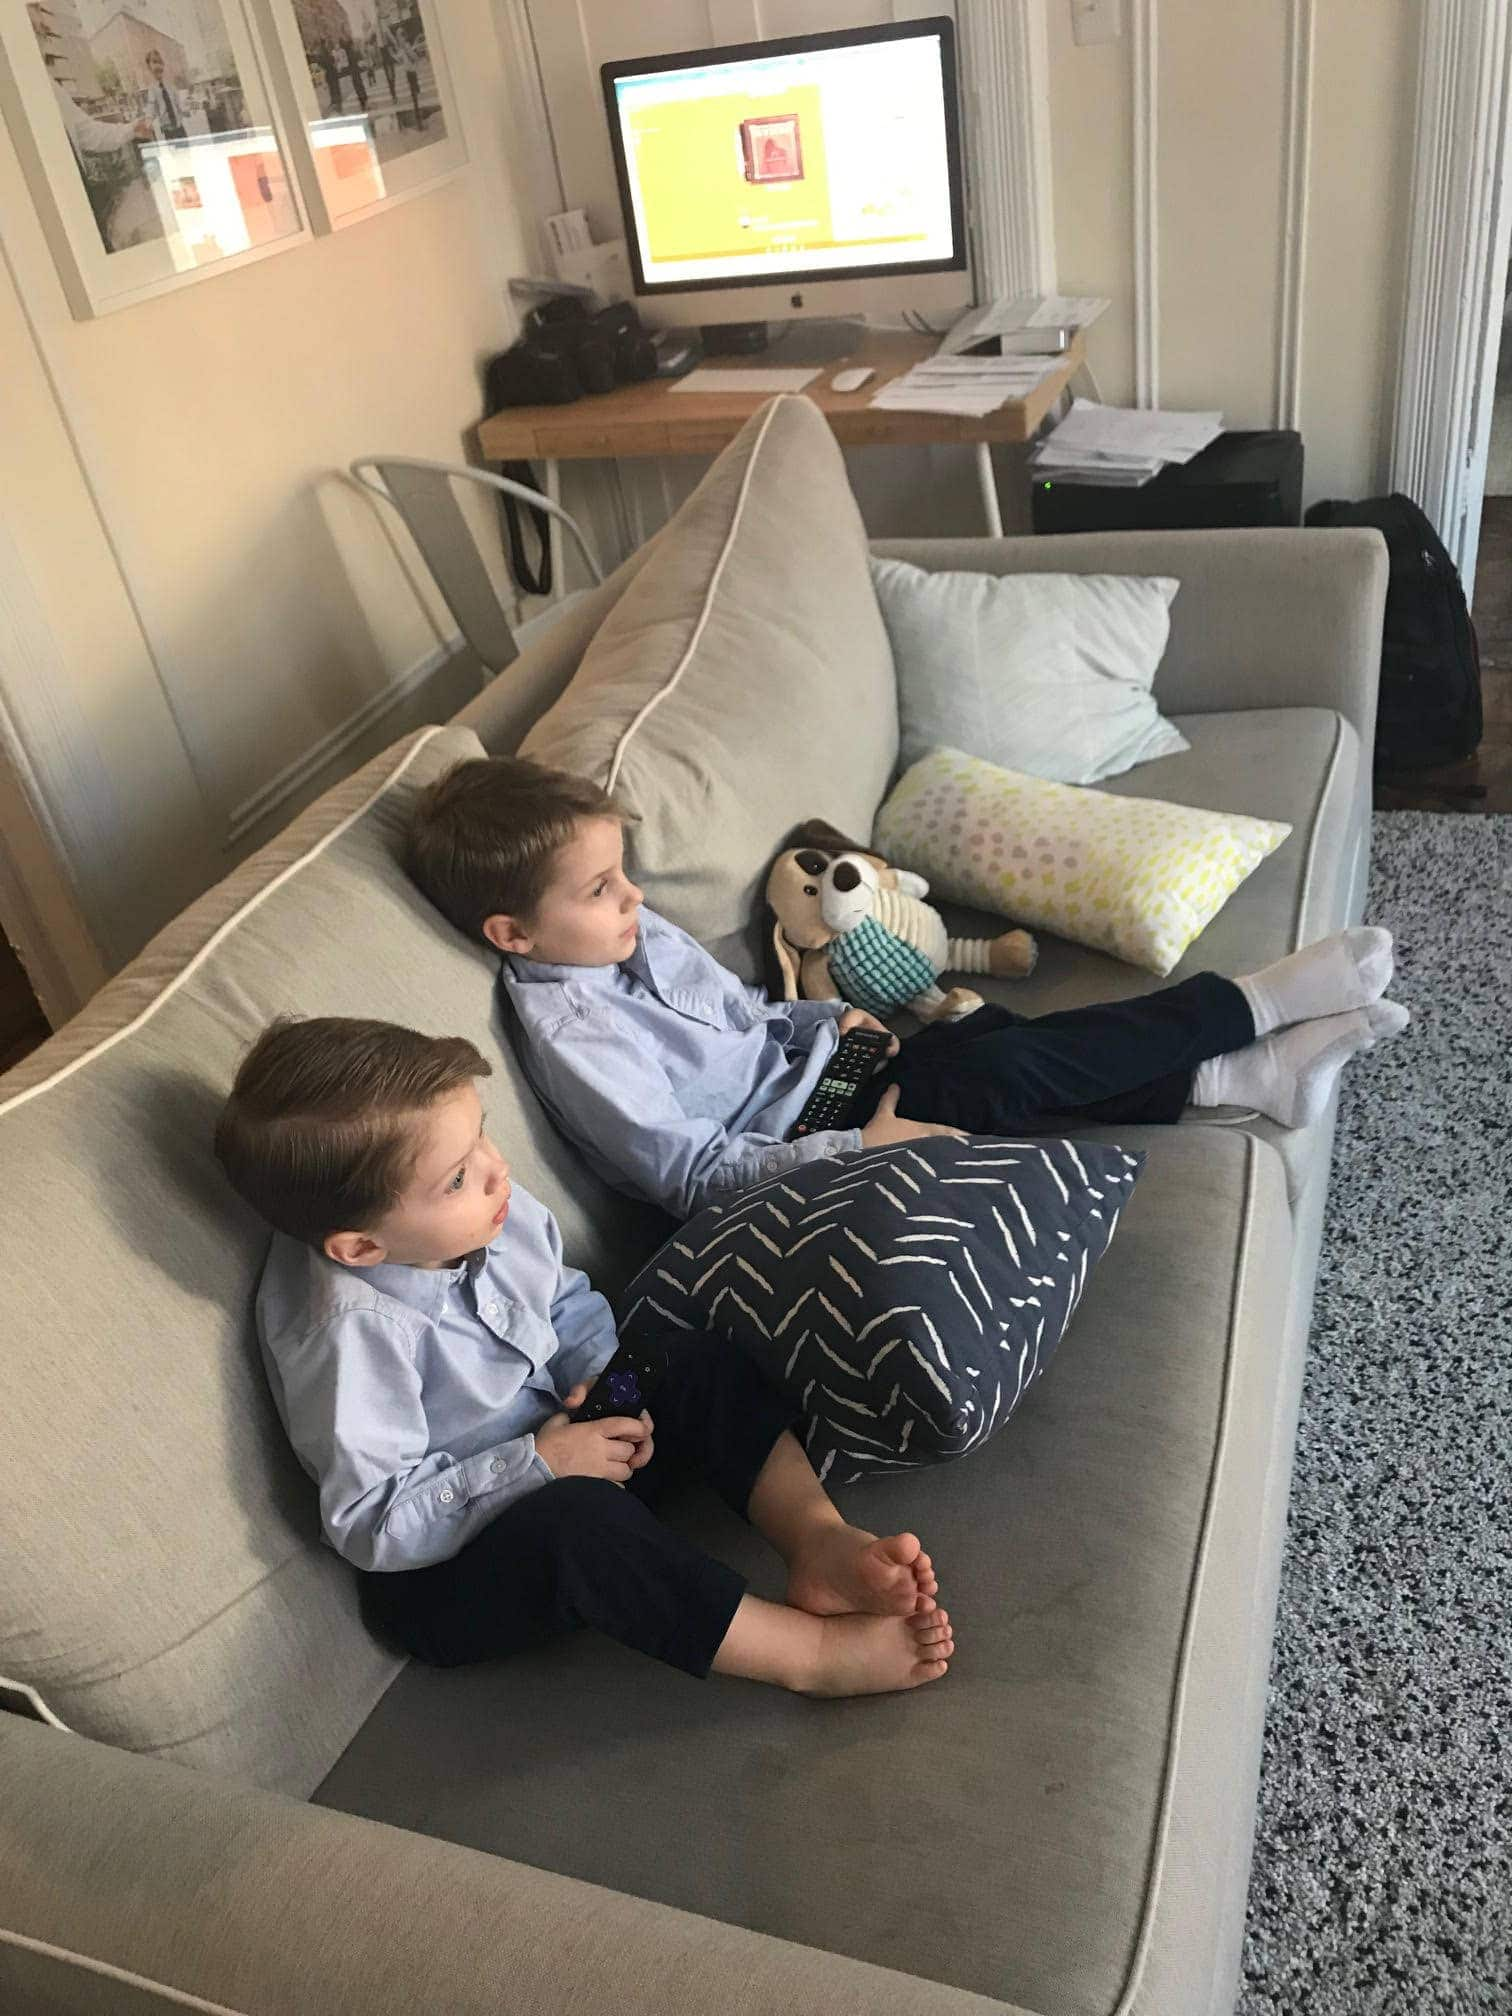 Blake and Eddie on the couch